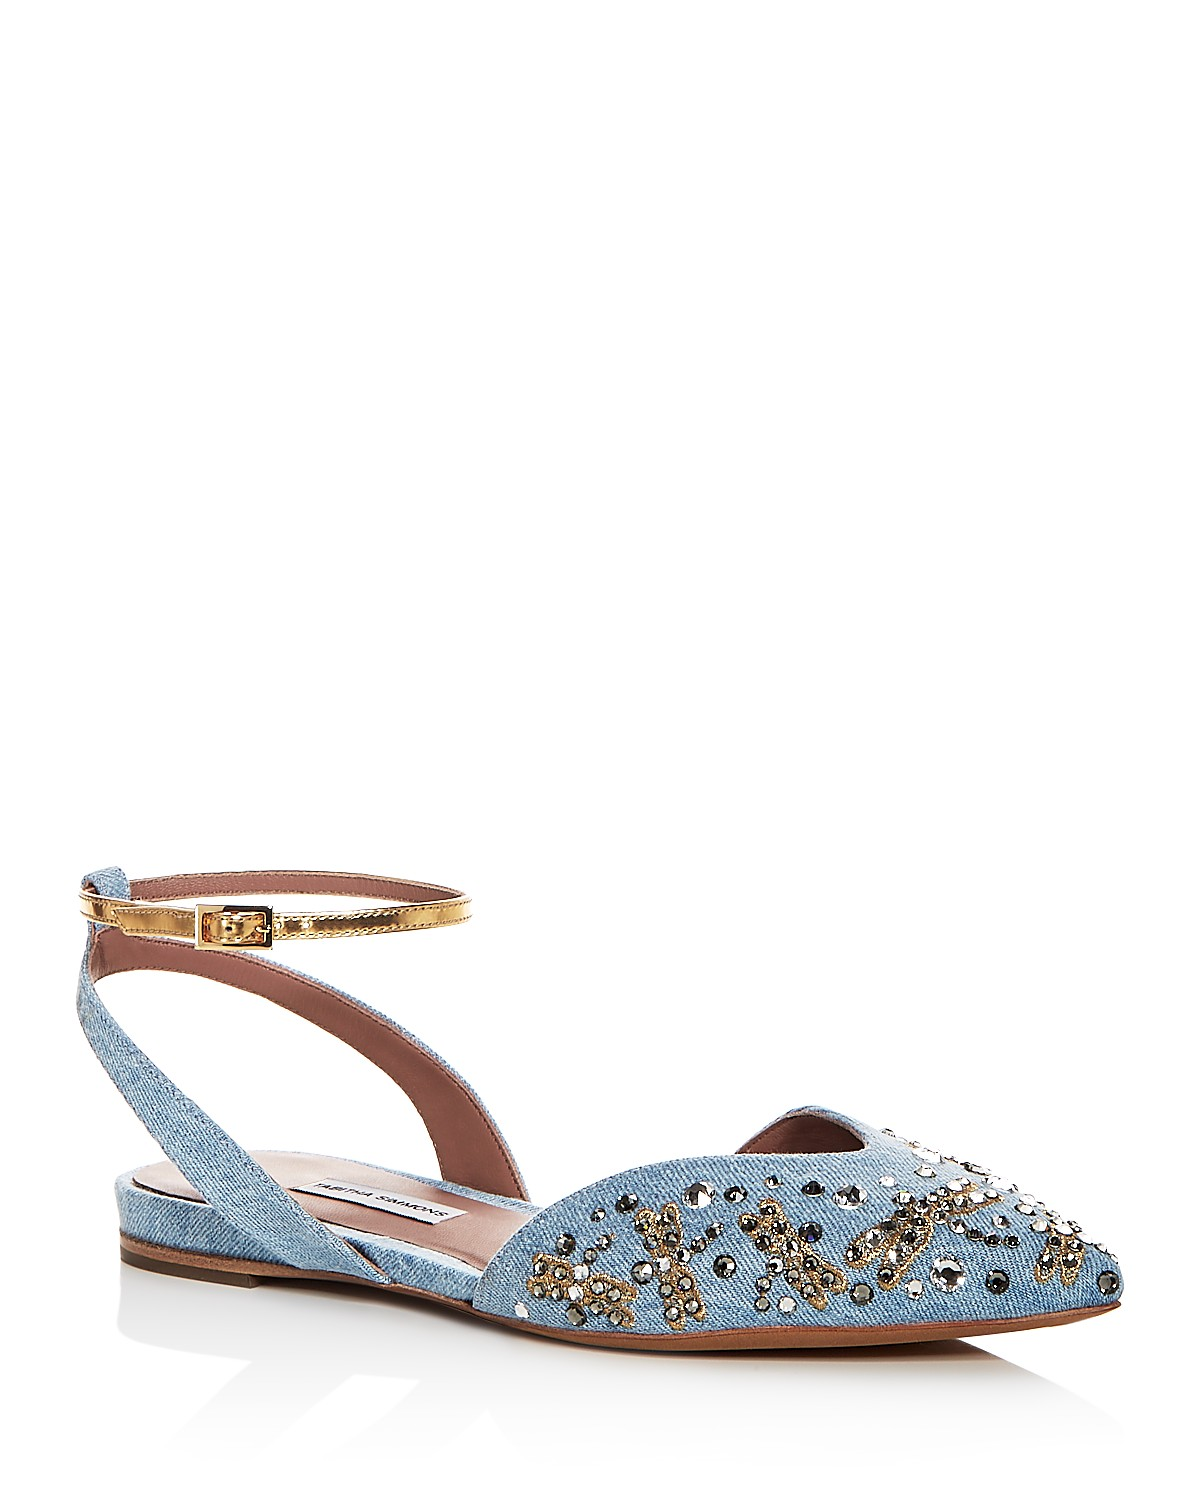 Tabitha Simmons Women's Vera Fly Spark Embellished Denim Ankle Strap Flats 9O4T5X0